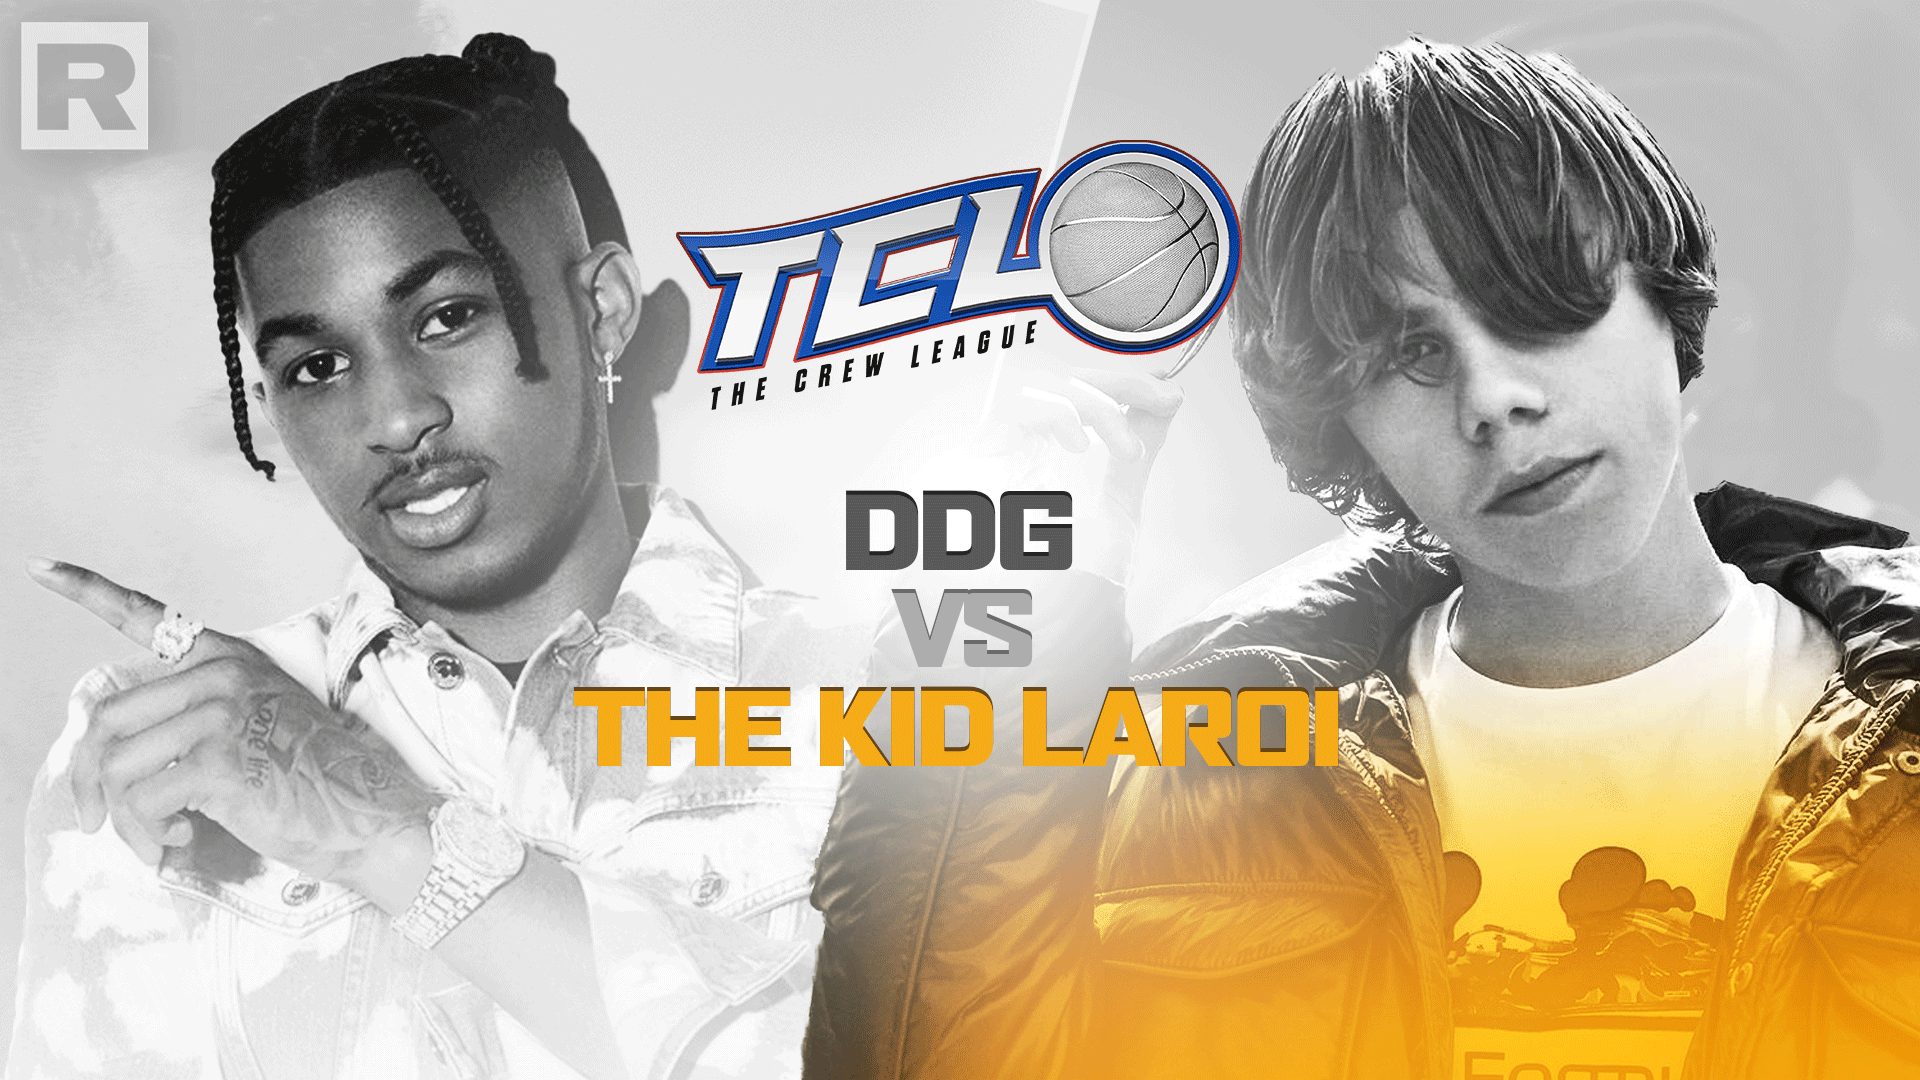 DDG and The Kid Laroi